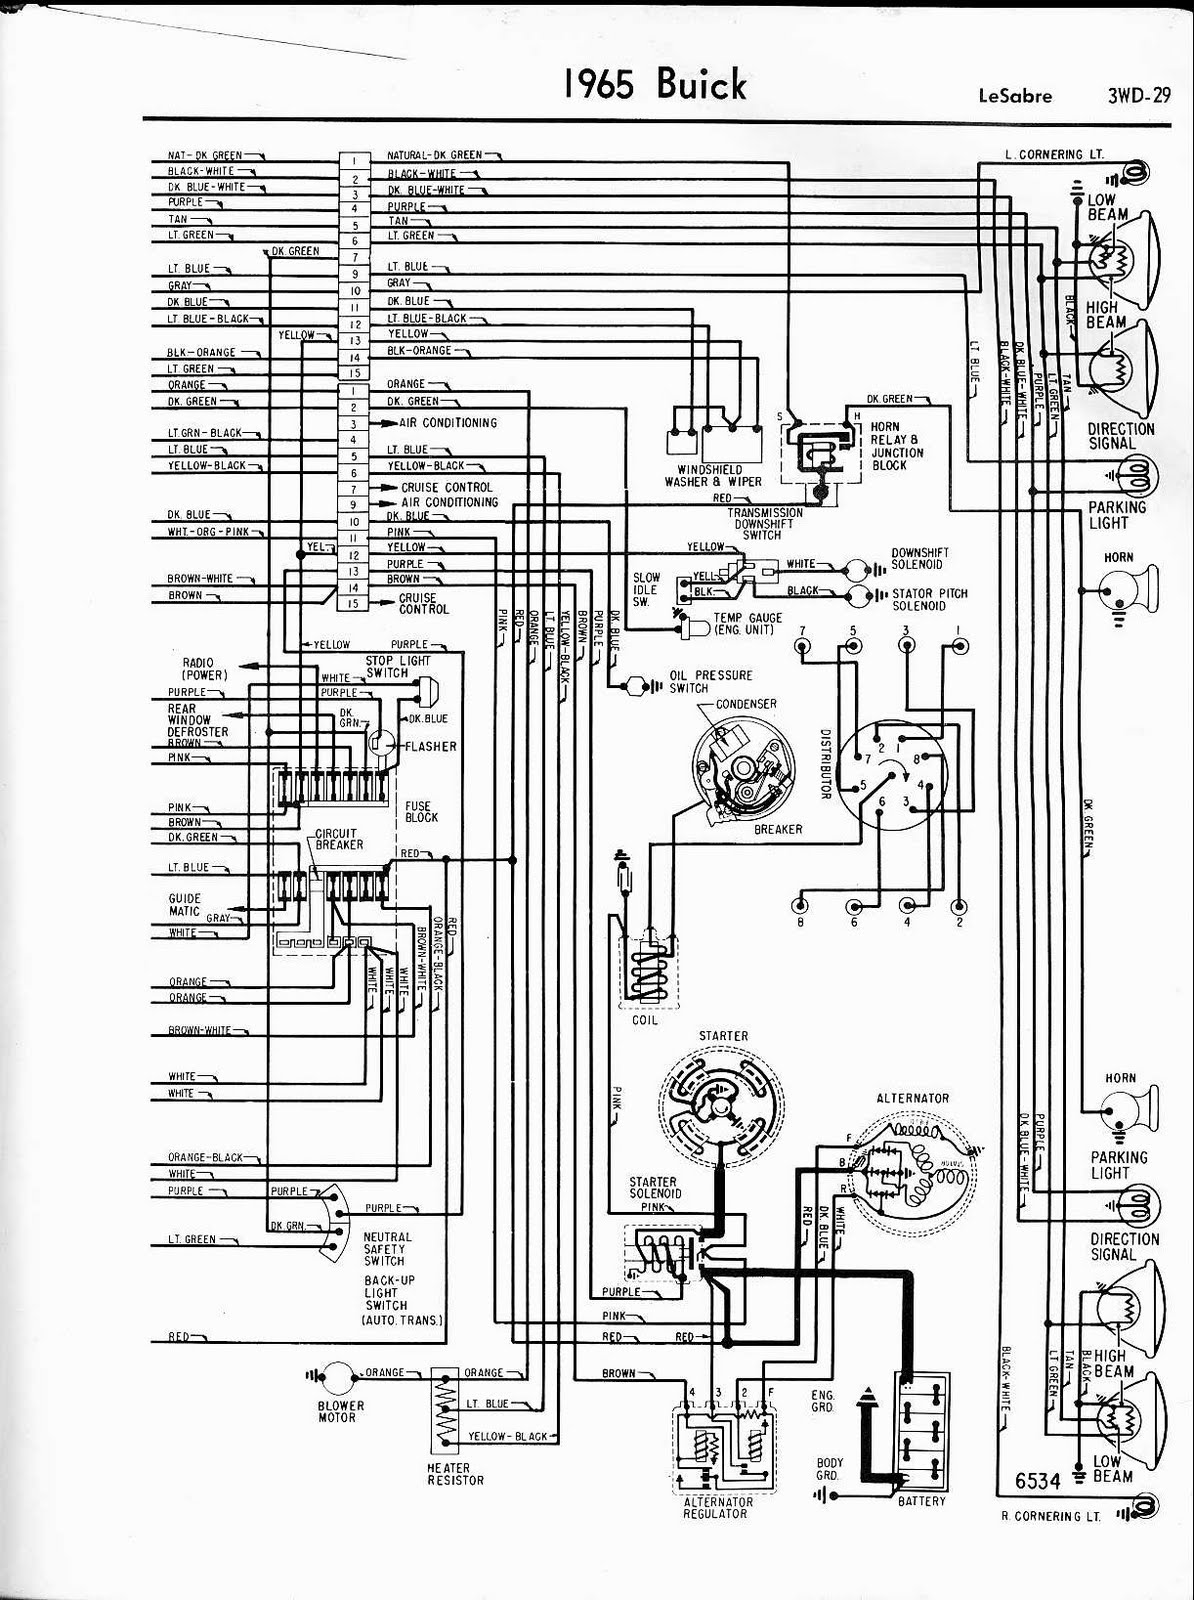 1965+Buick+LeSabre+Front+Side nissan sentra radio wiring diagram wirdig readingrat net 2004 nissan sentra radio wiring diagram at nearapp.co